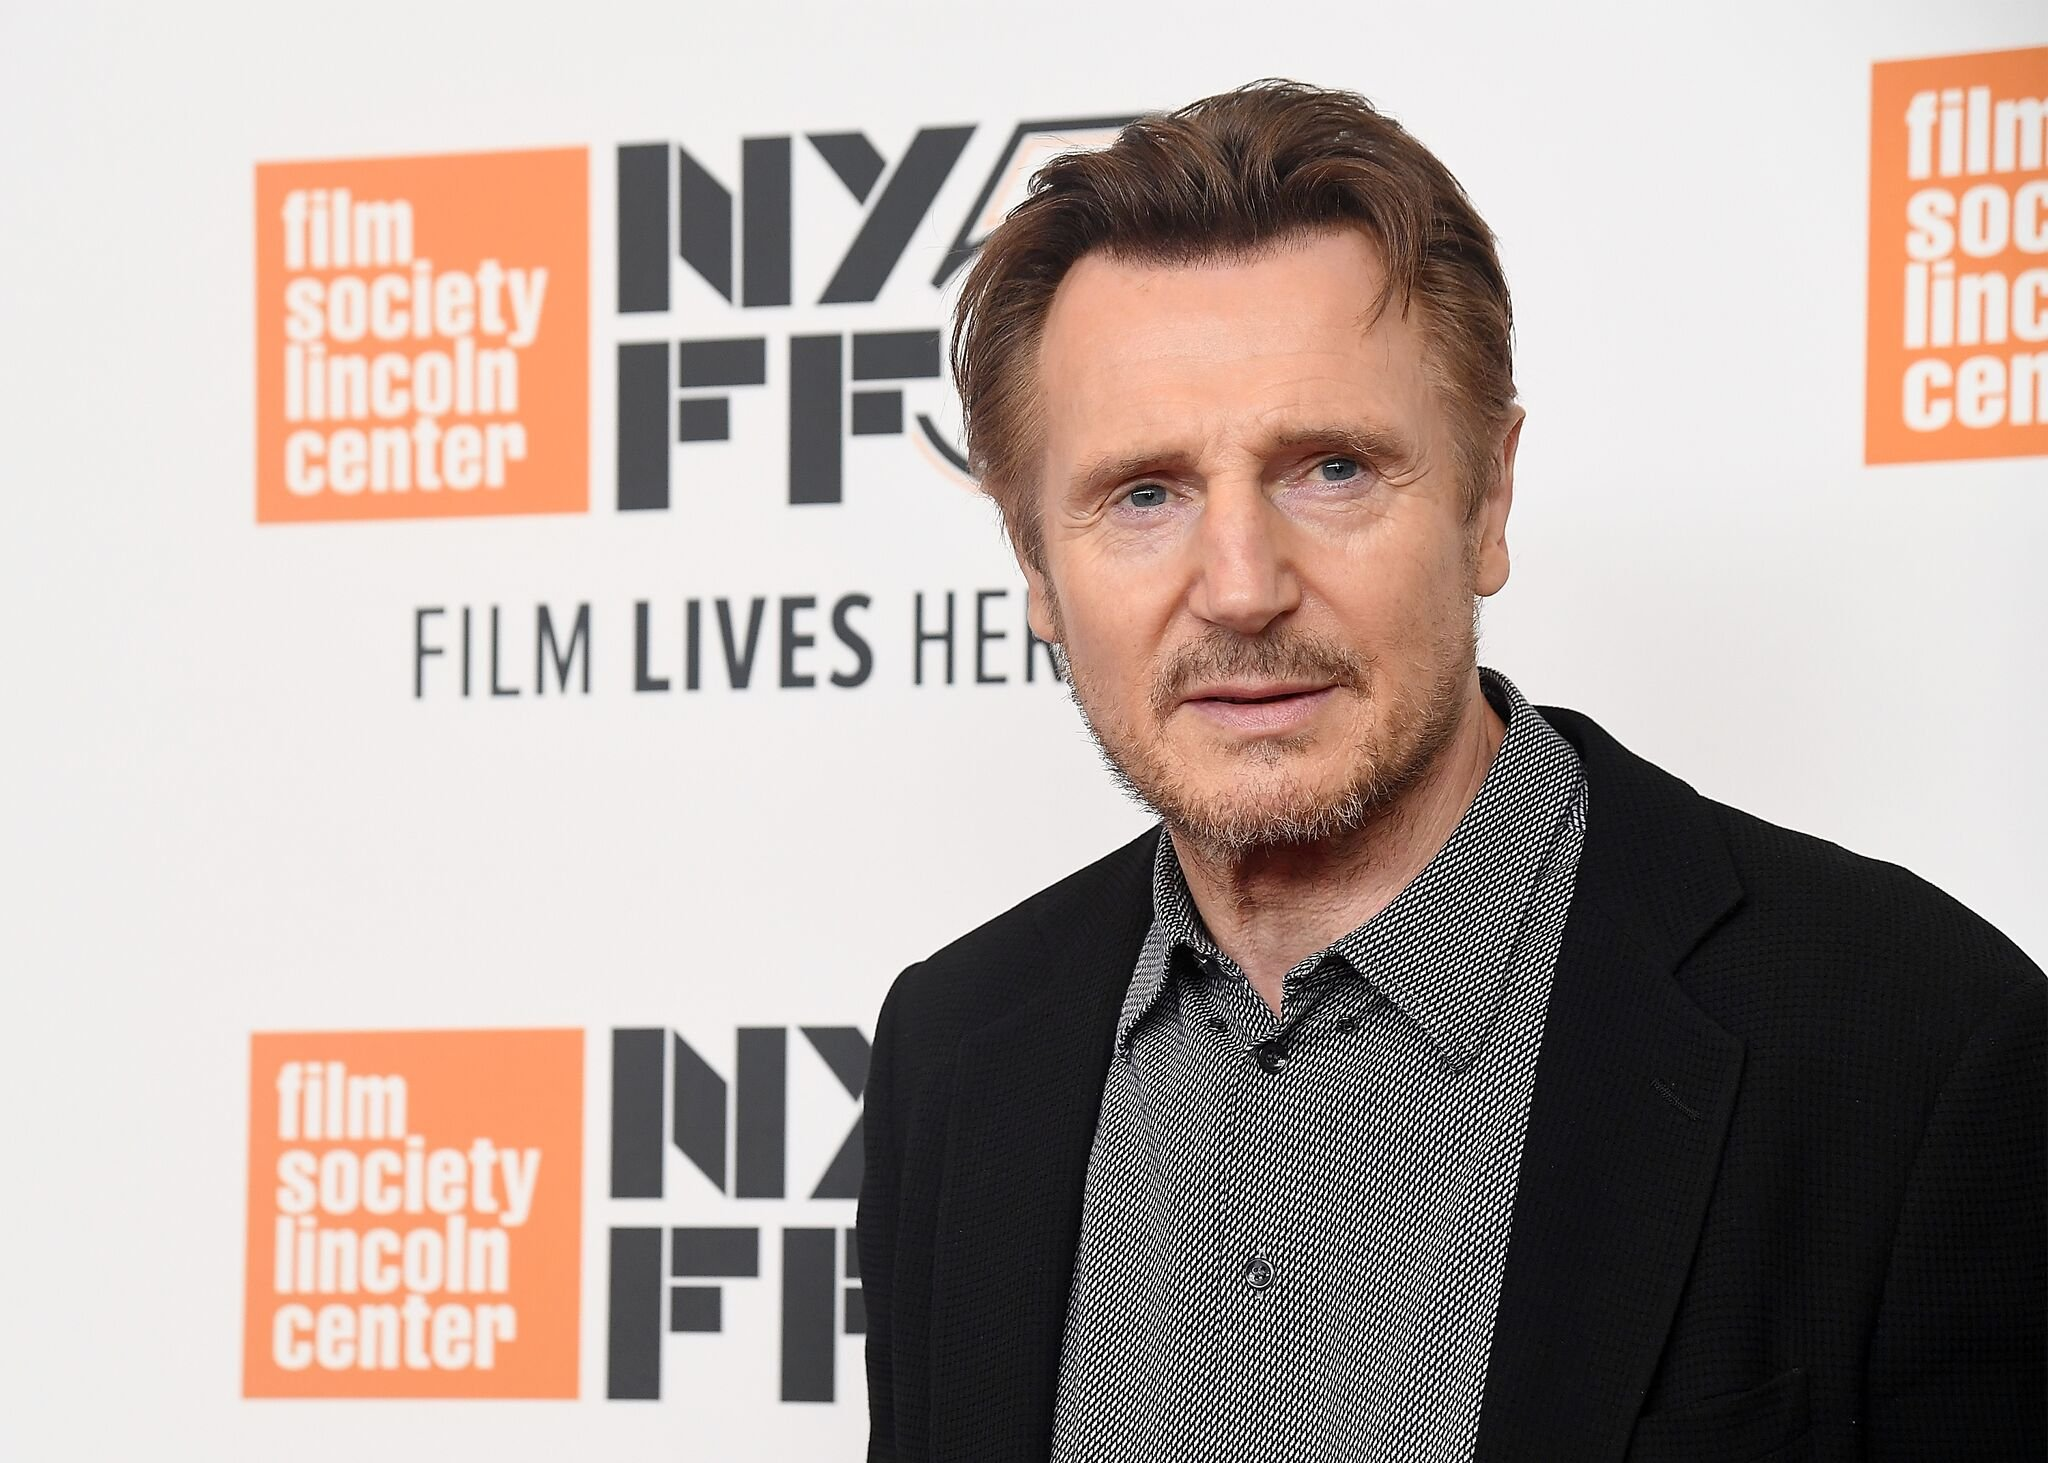 """Liam Neeson at the screening of """"The Ballad of Buster Scruggs"""" 